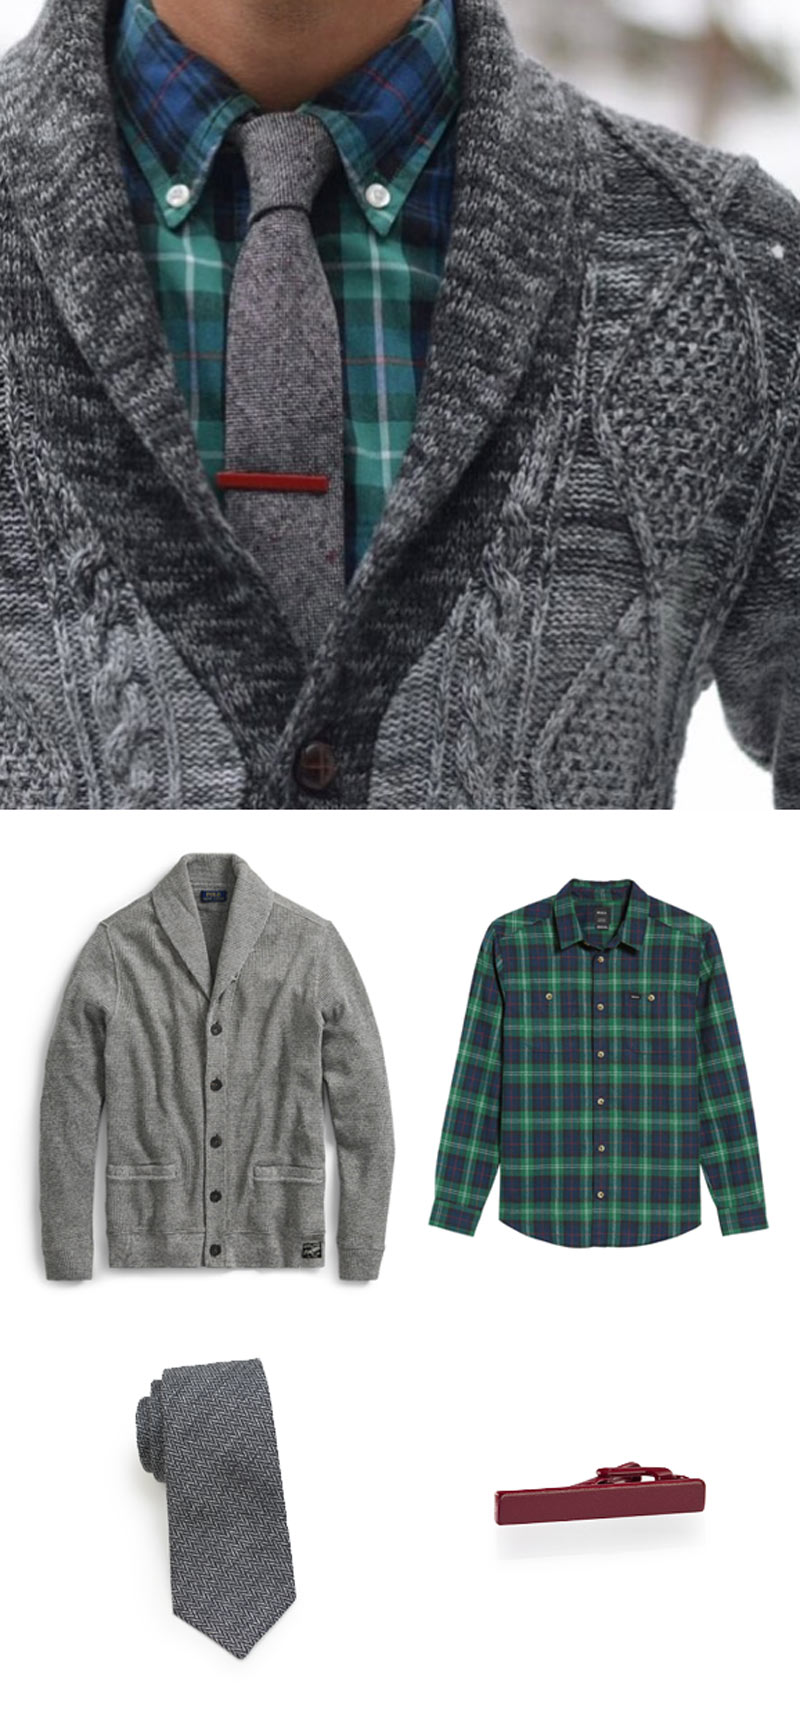 Dress Up For the Holiday with this Inspirational Mens Look